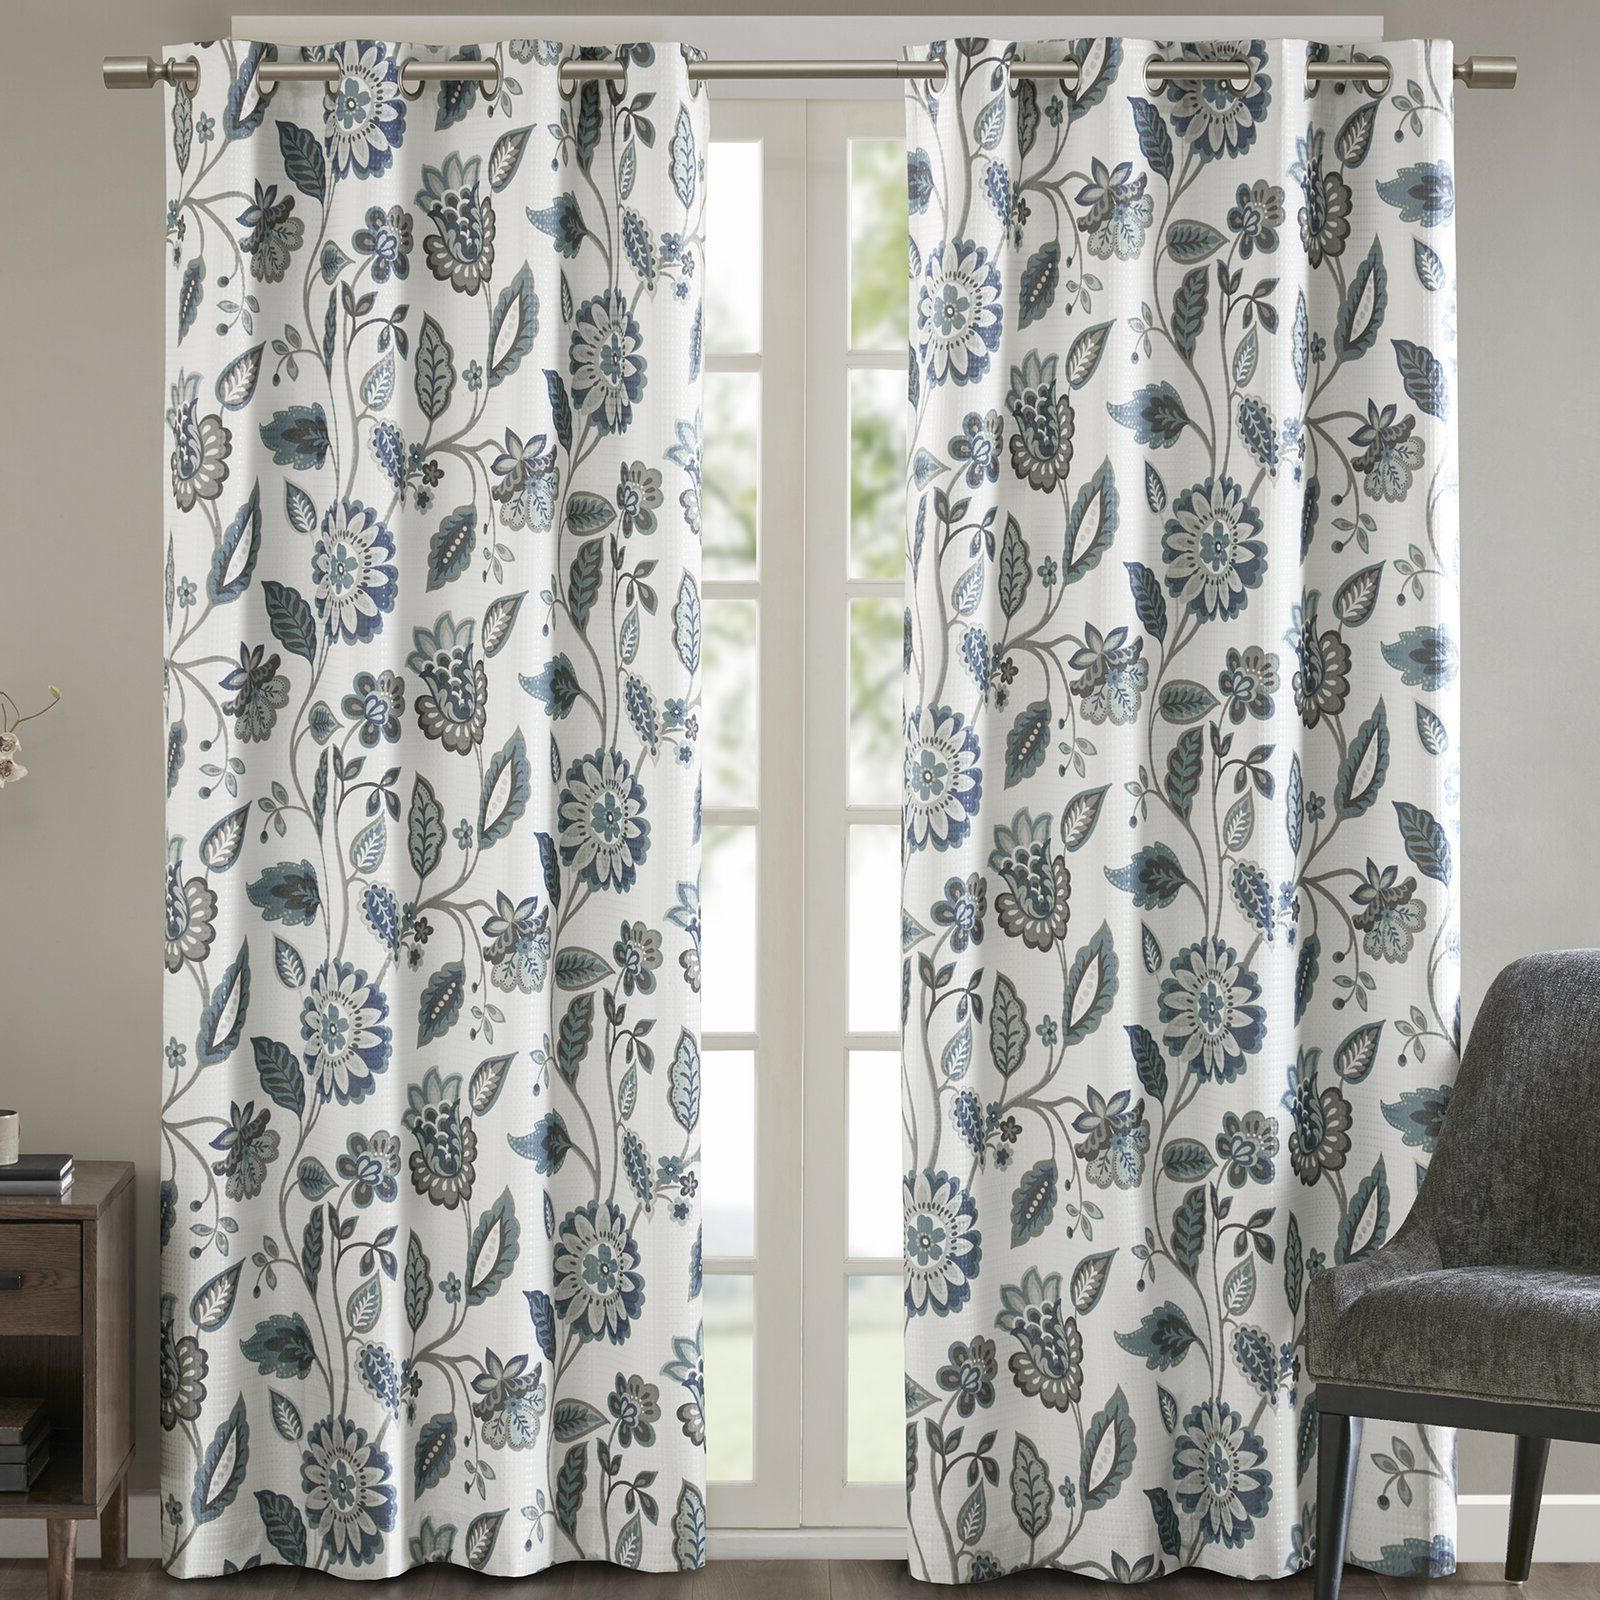 Ziva Floral Room Darkening Thermal Grommet Single Curtain With Regard To Most Current Duran Thermal Insulated Blackout Grommet Curtain Panels (View 21 of 21)